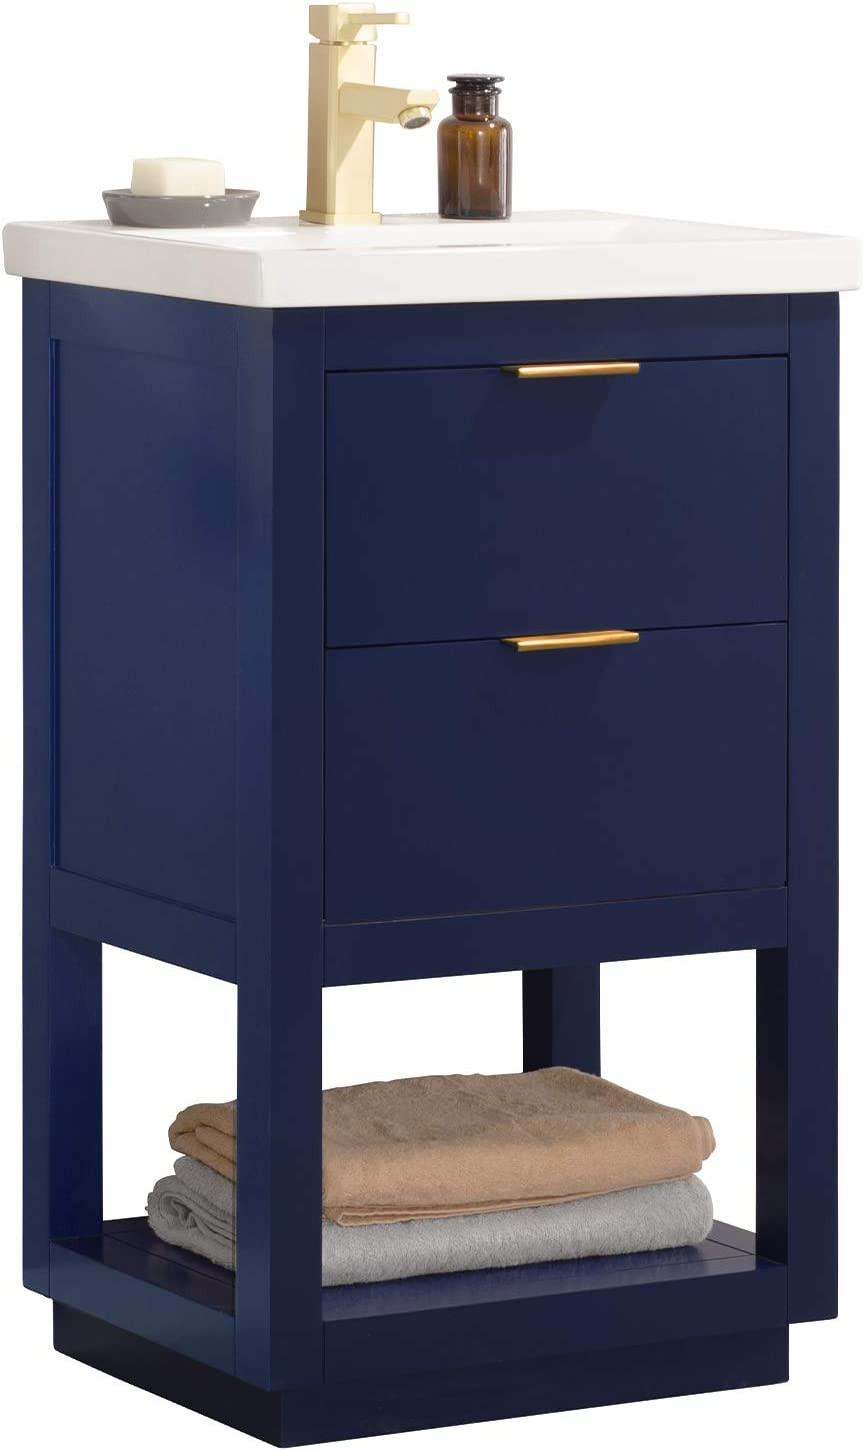 Luca Kitchen Bath Lc20gbp Sydney 20 Bathroom Vanity Set In Midnight Blue With Integrated Porcelain Top Amazon Com